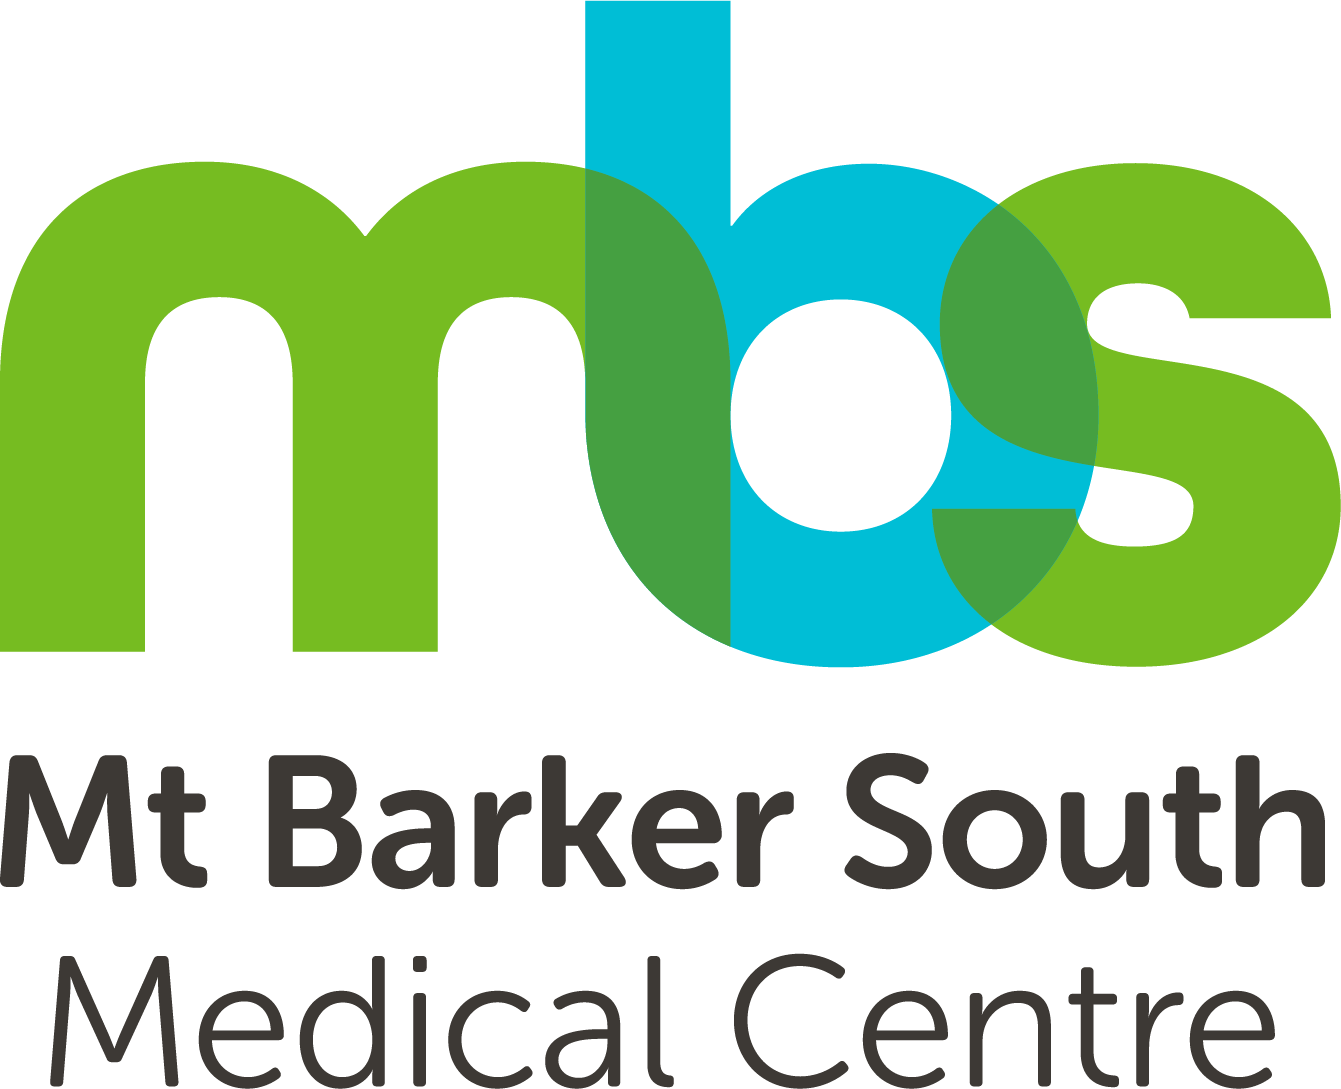 Mt Barker South Medical Centre